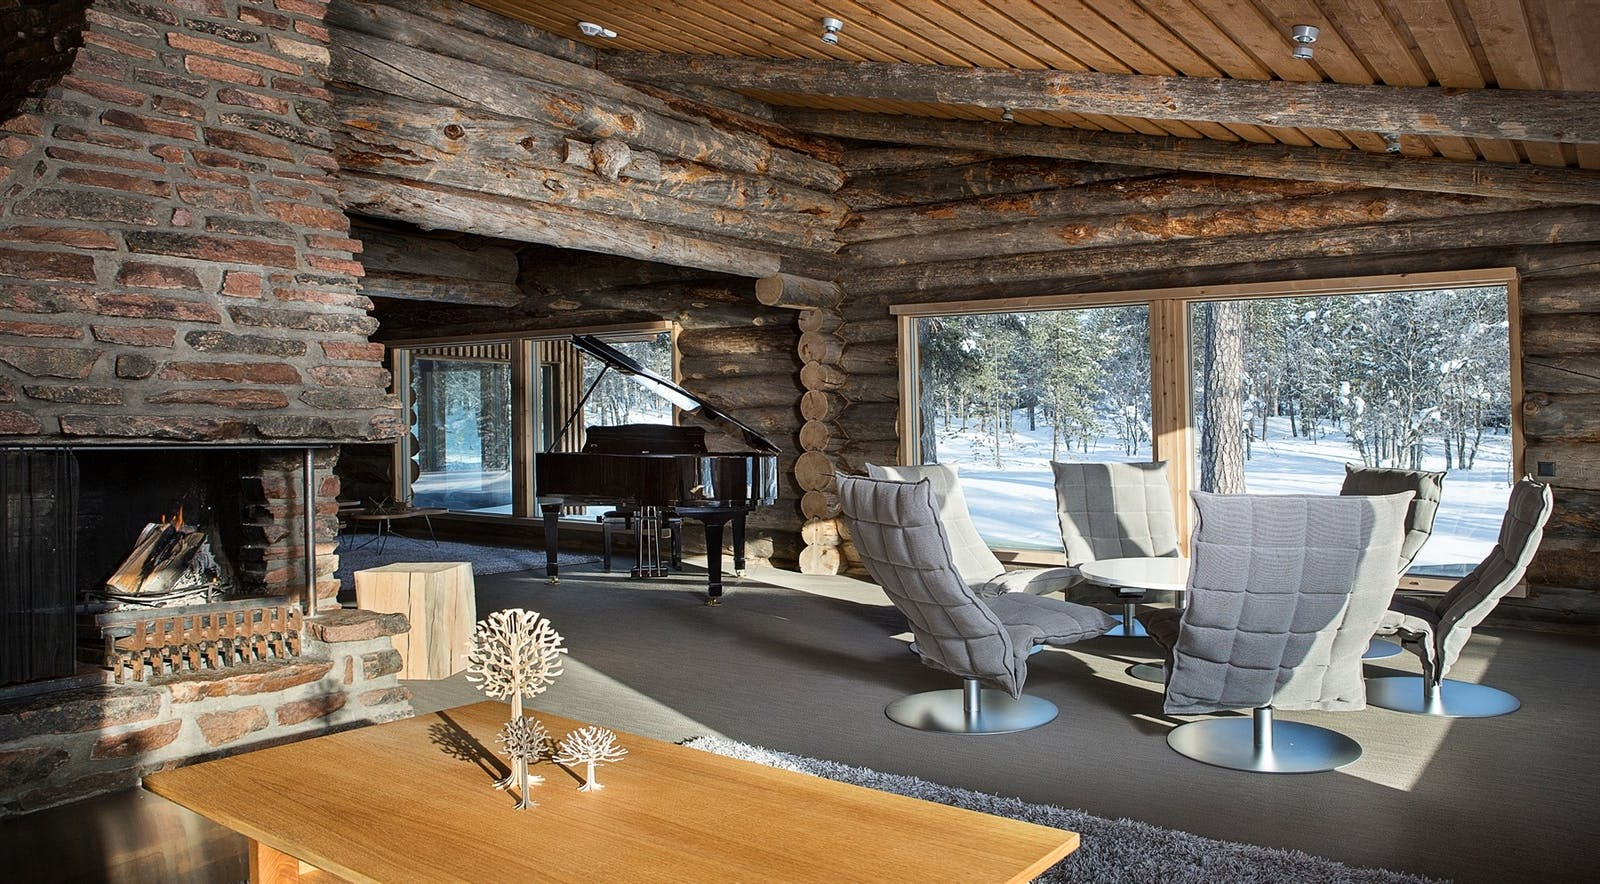 Lounge, Javri Lodge, Finland